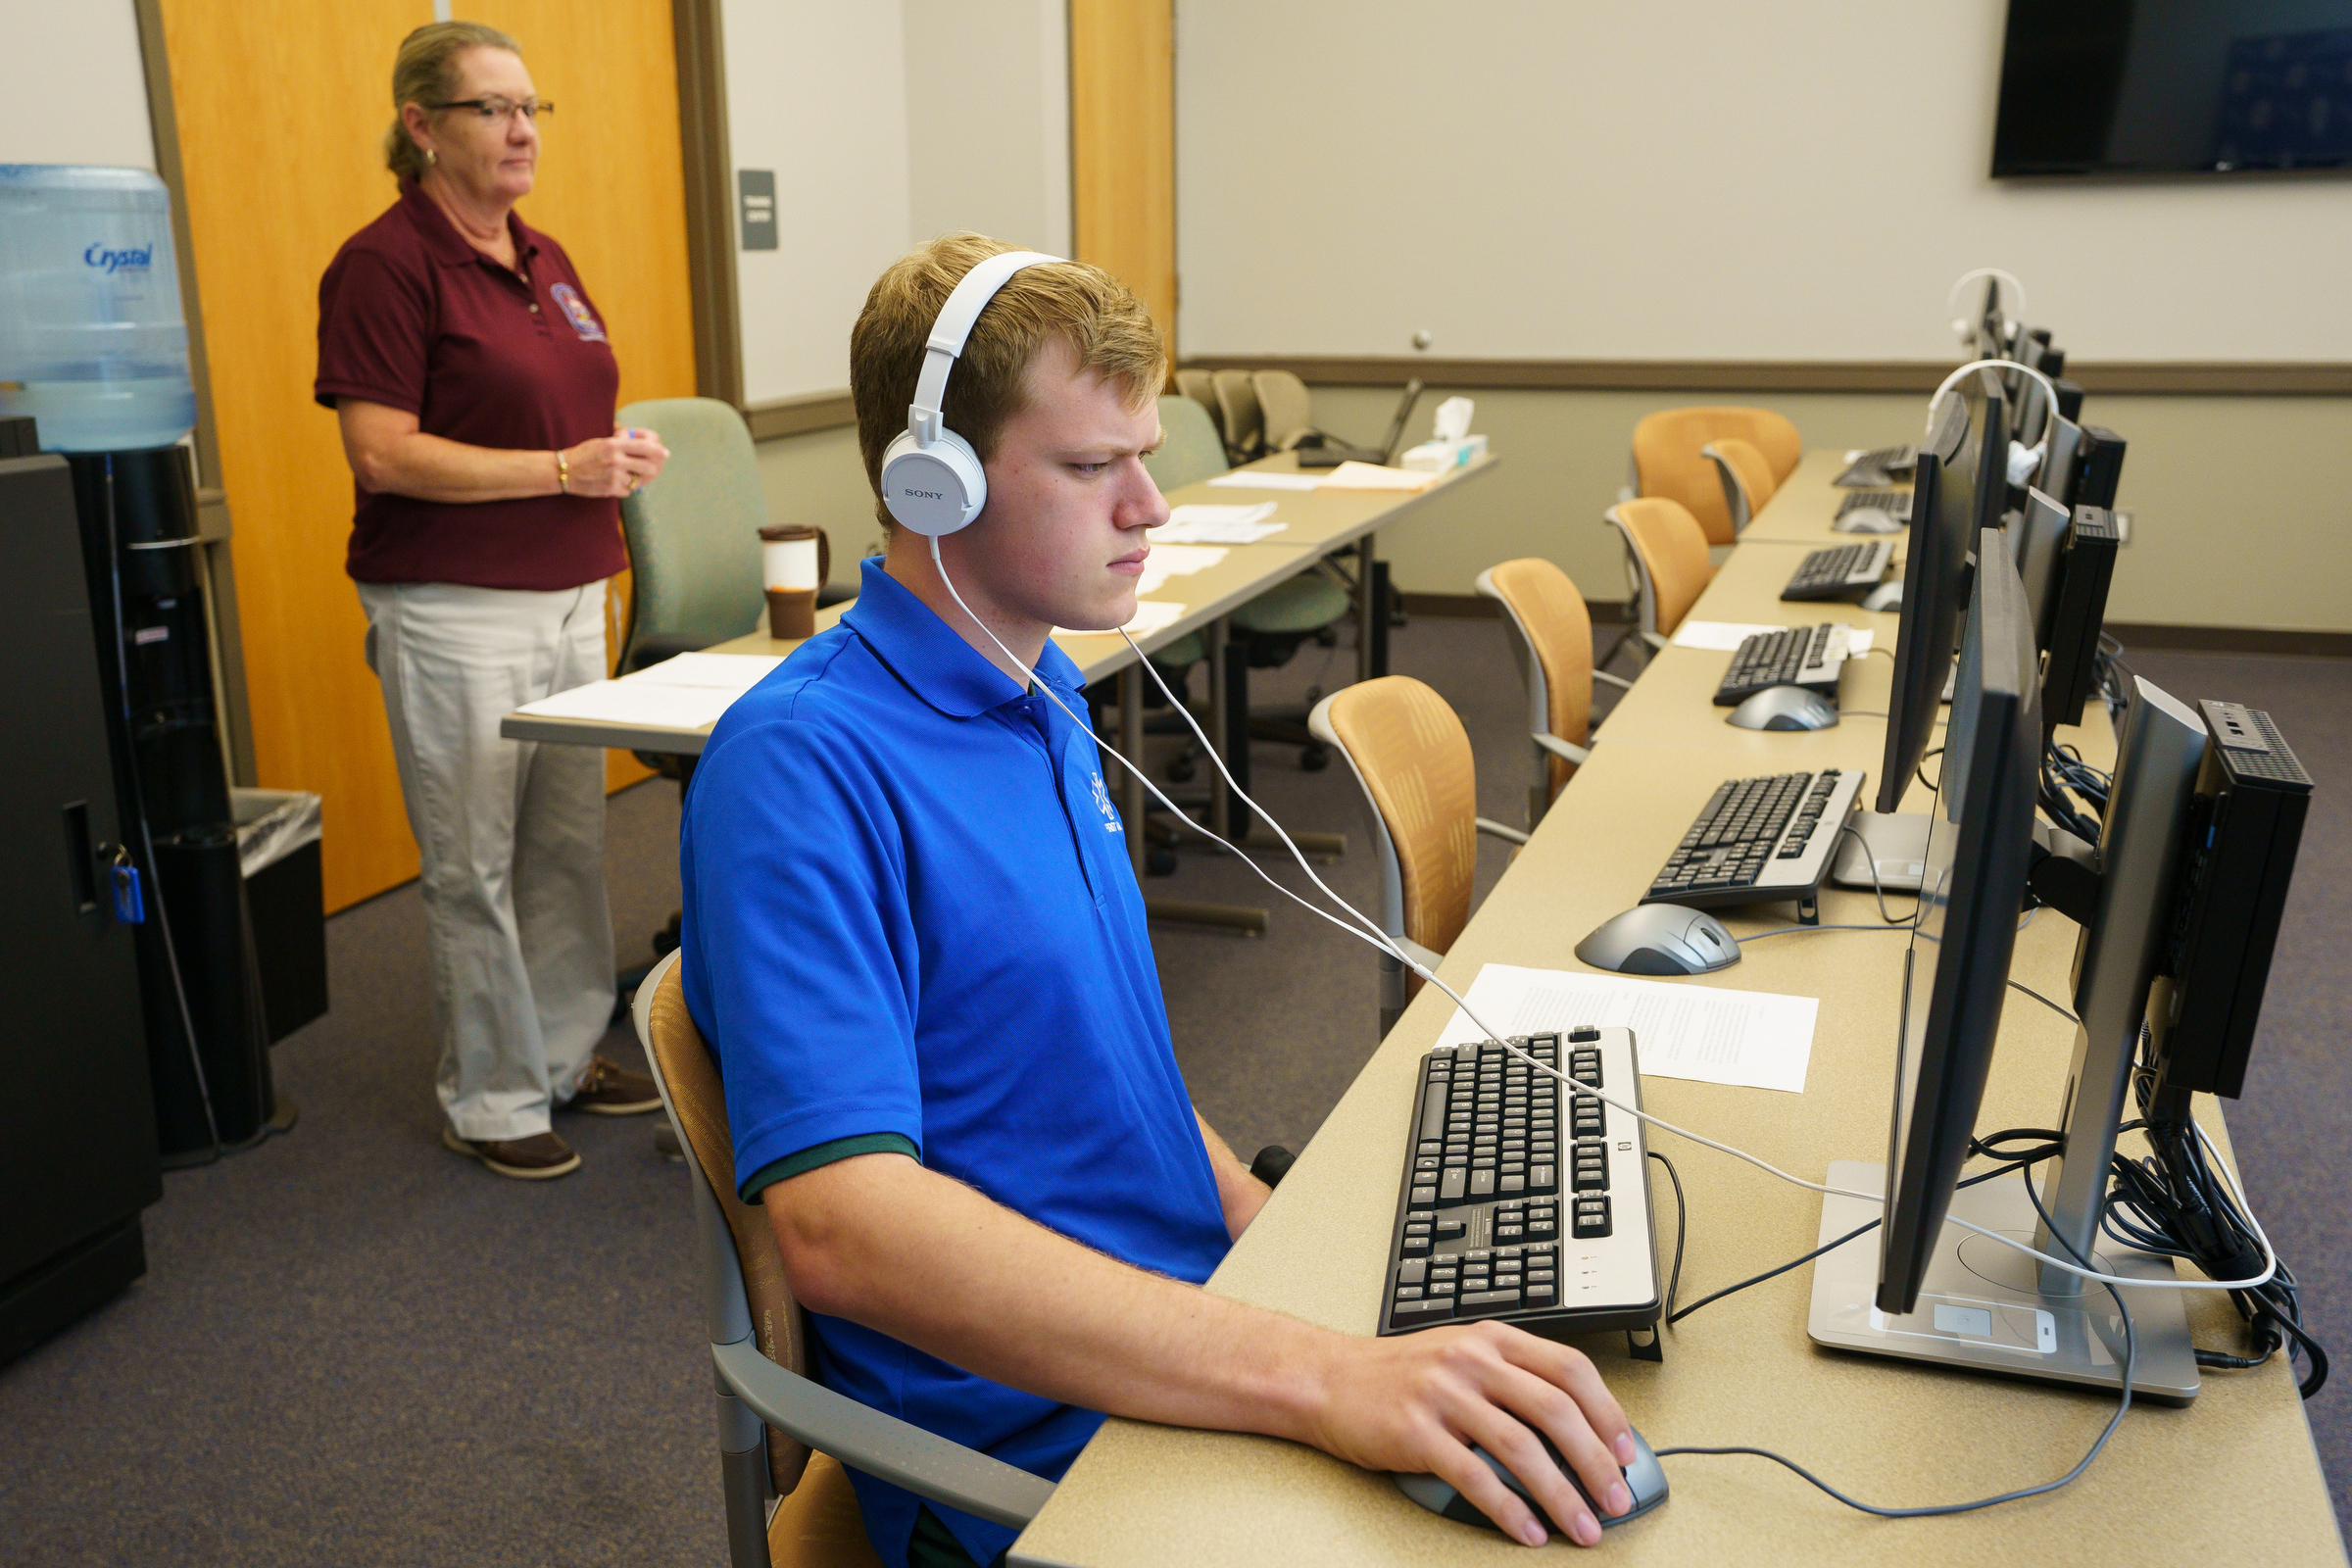 Steven Vernitsky, front center, takes a job test, as.Erin Taylor, back left, Assistant Training Coordinator of the Department of Public Safety Emergency Communications stands by, at the Montgomery County Emergency Operations Center, in Eagleville, PA., Wednesday, August 22, 2018. In the midst of a police dispatcher shortage, the Montgomery County Department of Public Safety is holding a 4-hour, no-appointment, 911 dispatcher hiring spree from 6 a.m. to 10 a.m.